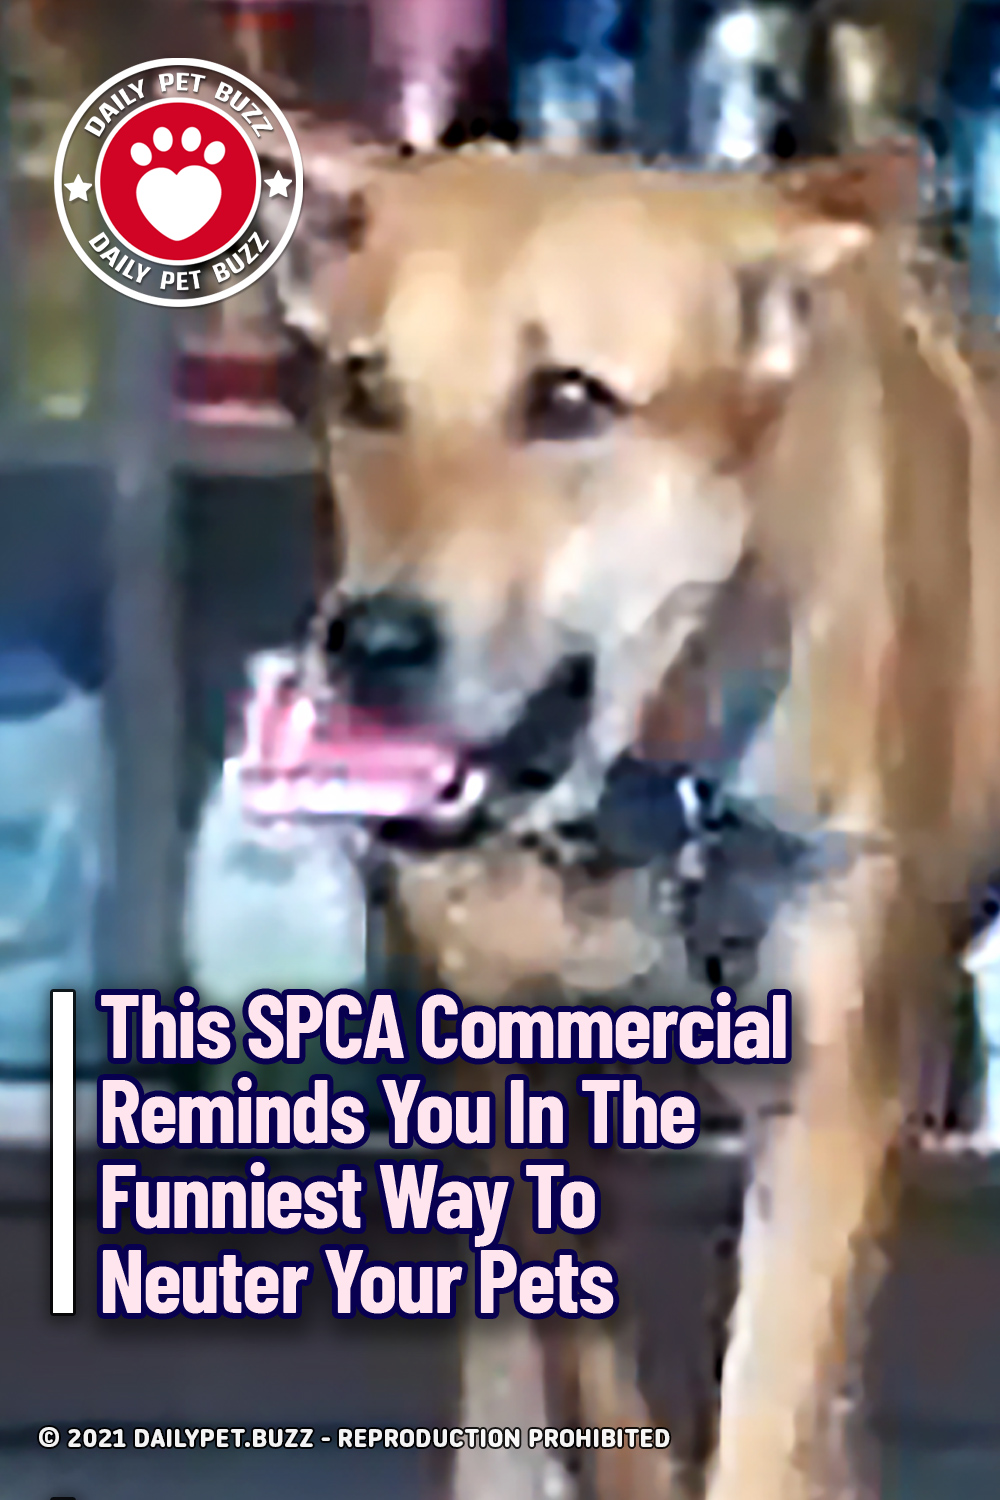 This SPCA Commercial Reminds You In The Funniest Way To Neuter Your Pets